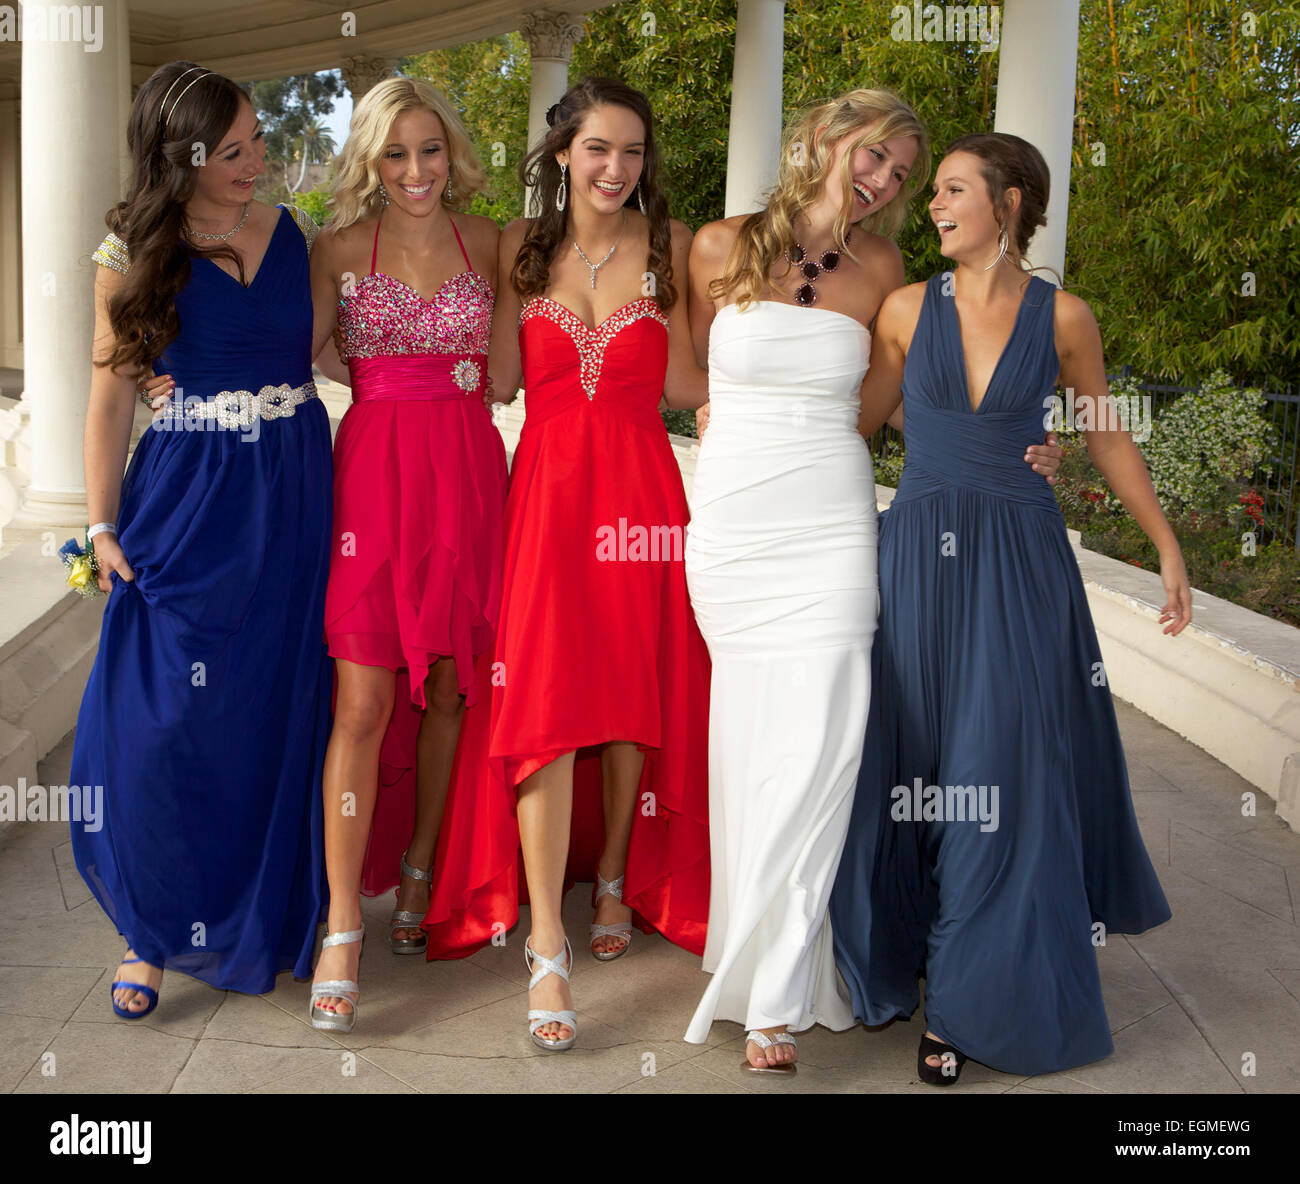 Five Beautiful Teenage Girls In Prom Dresses Walking, smiling and ...